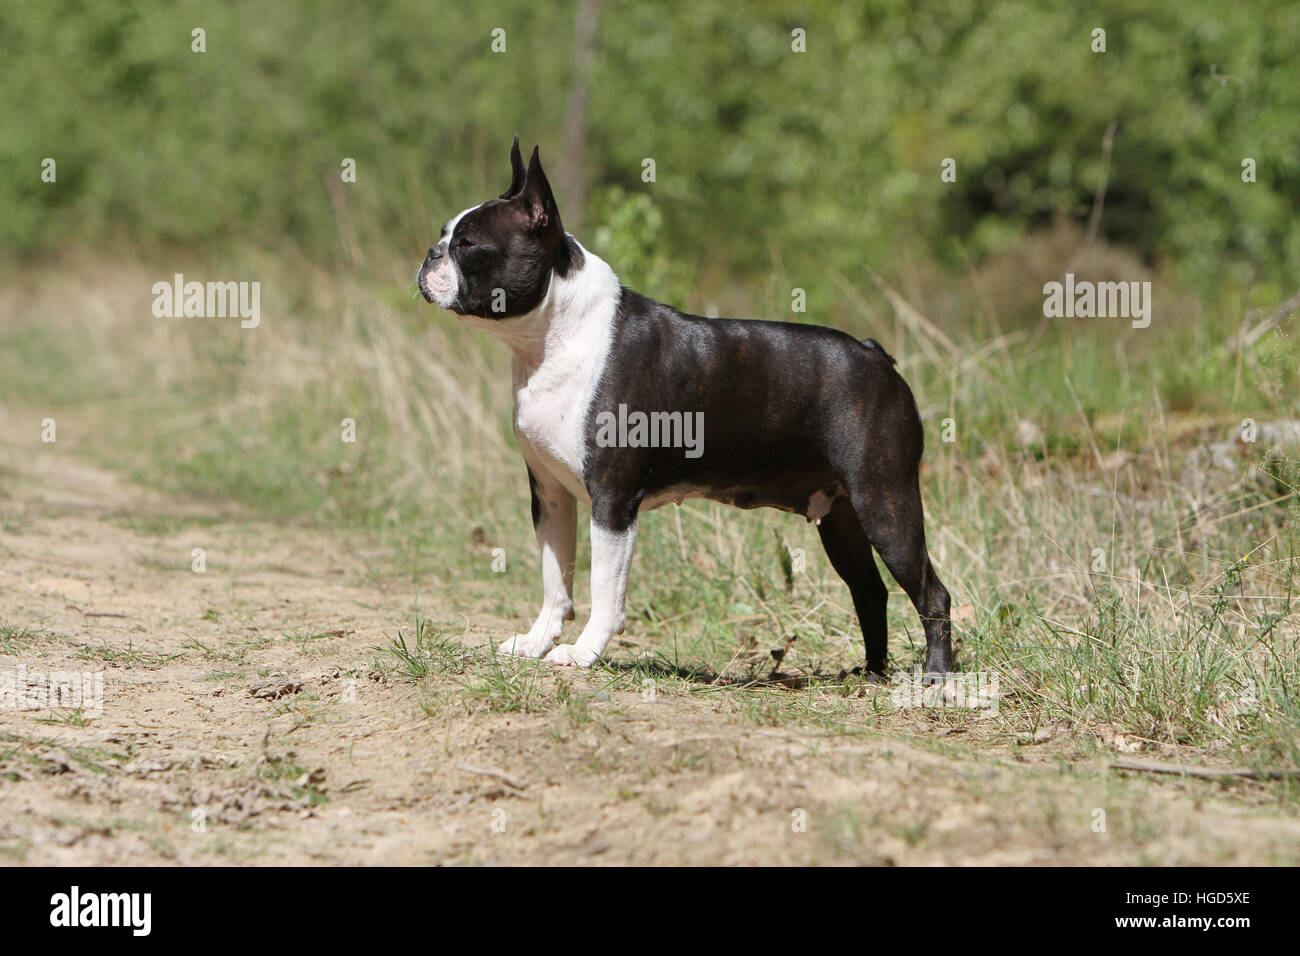 Dog Boston Terrier adult adults black with white standing face standard - Stock Image